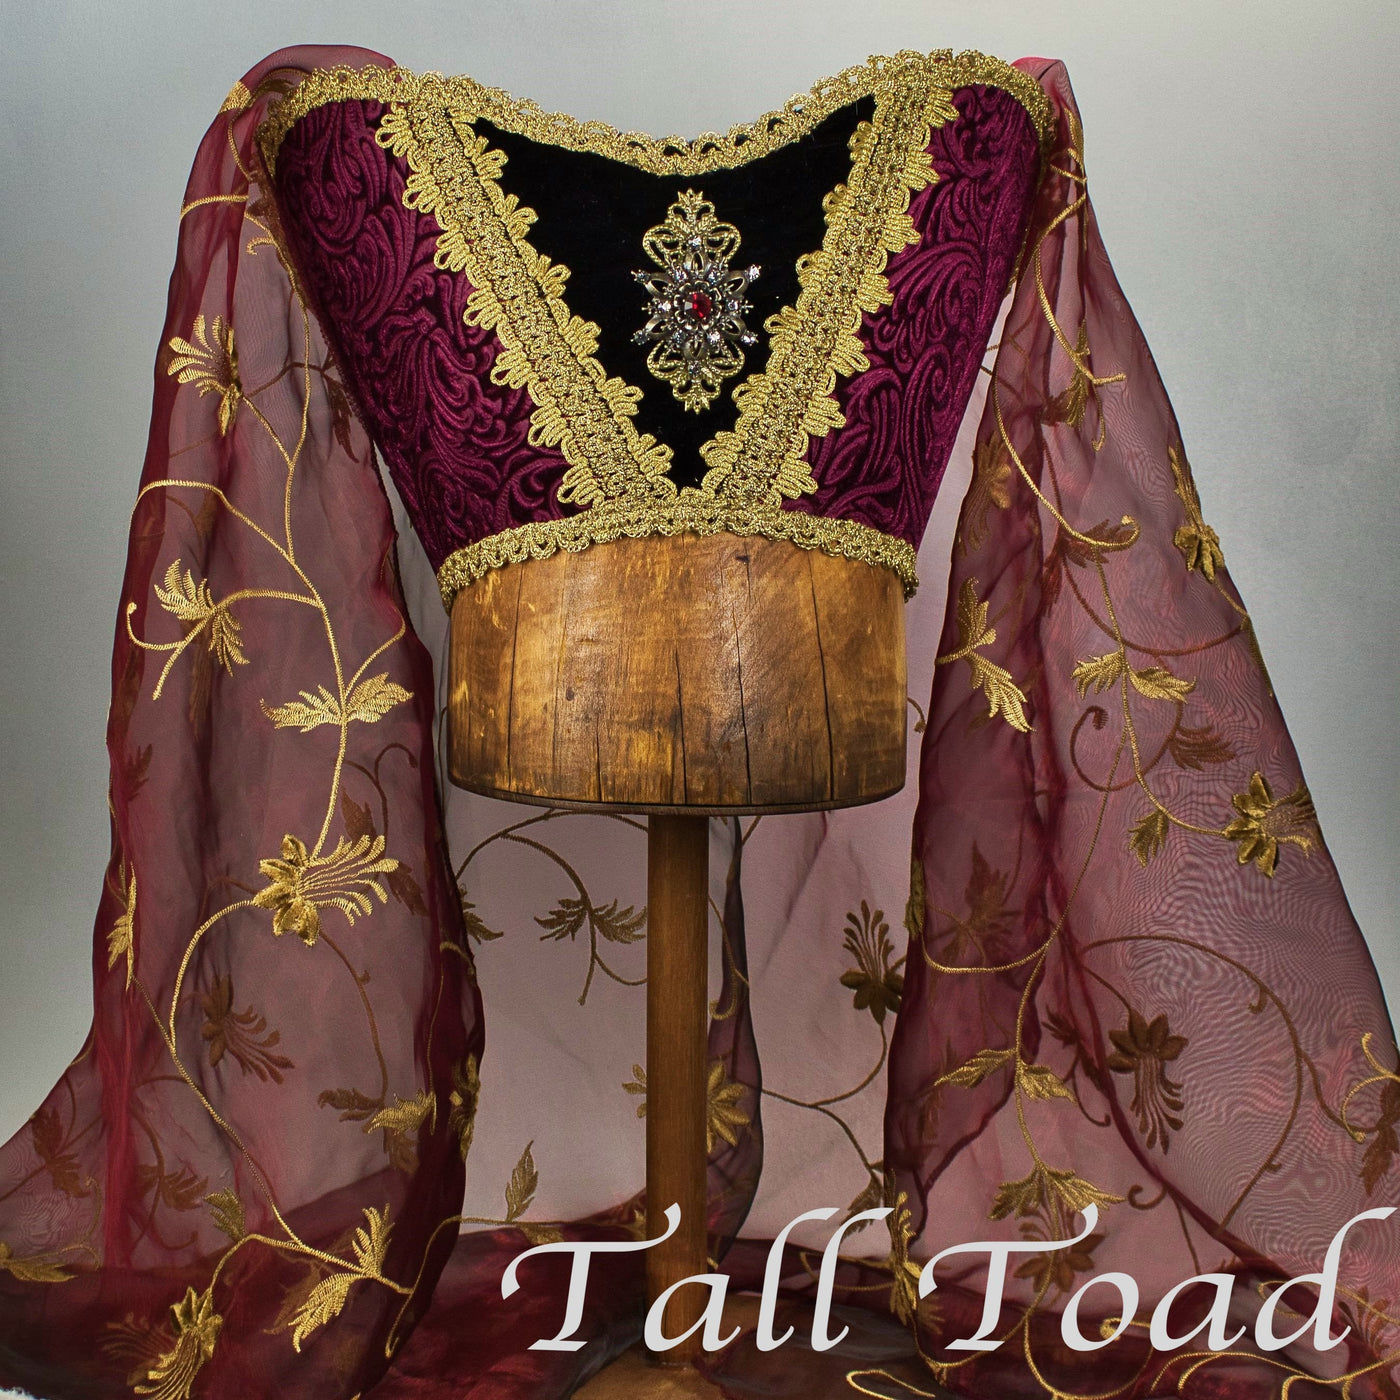 Fancy Horned Headdress - Wine / Wine Embroidered Veil / Ruby Jewel - Tall Toad